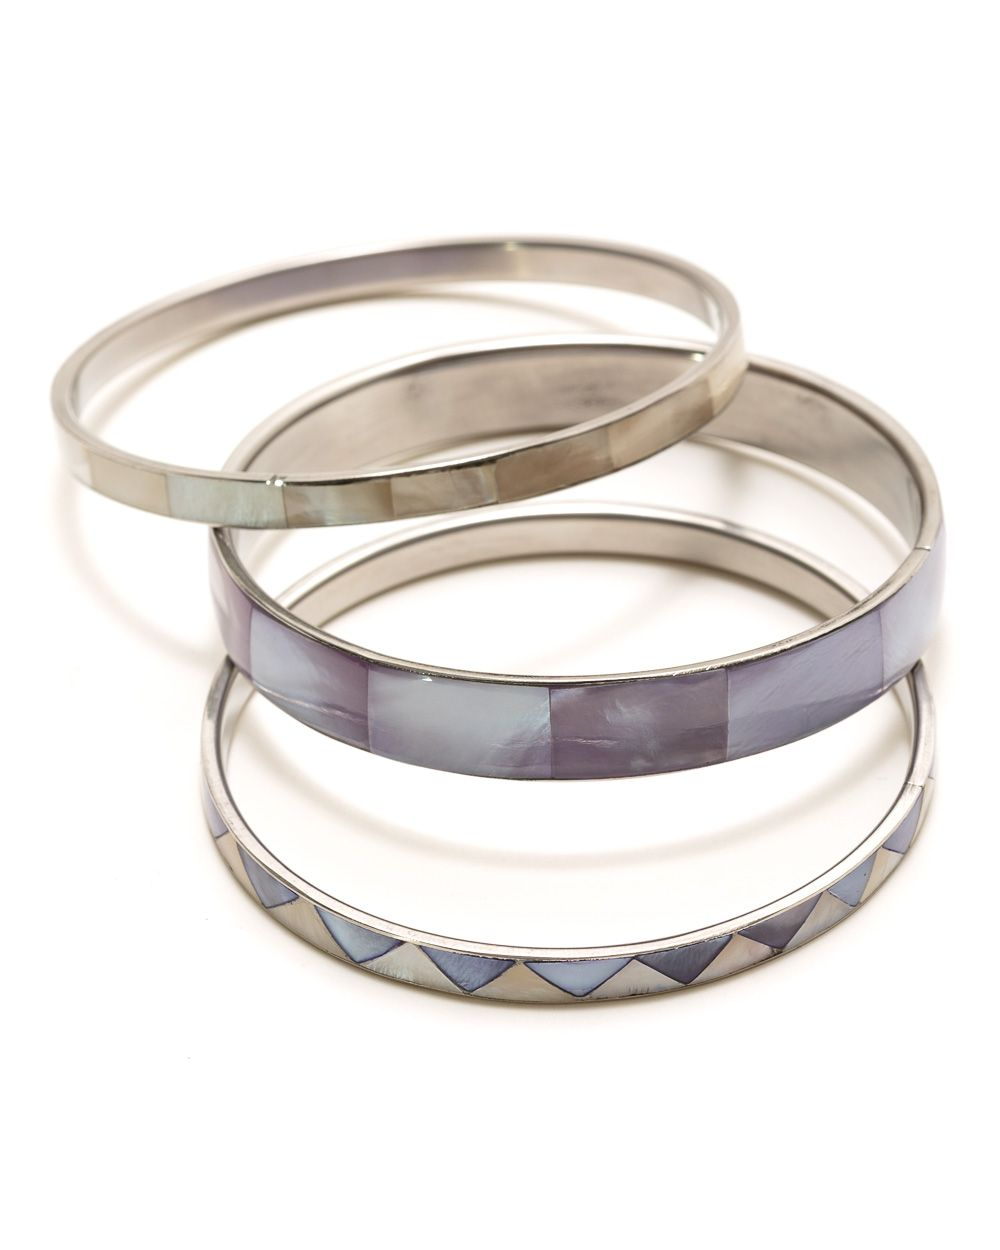 Lavender shell bangle set